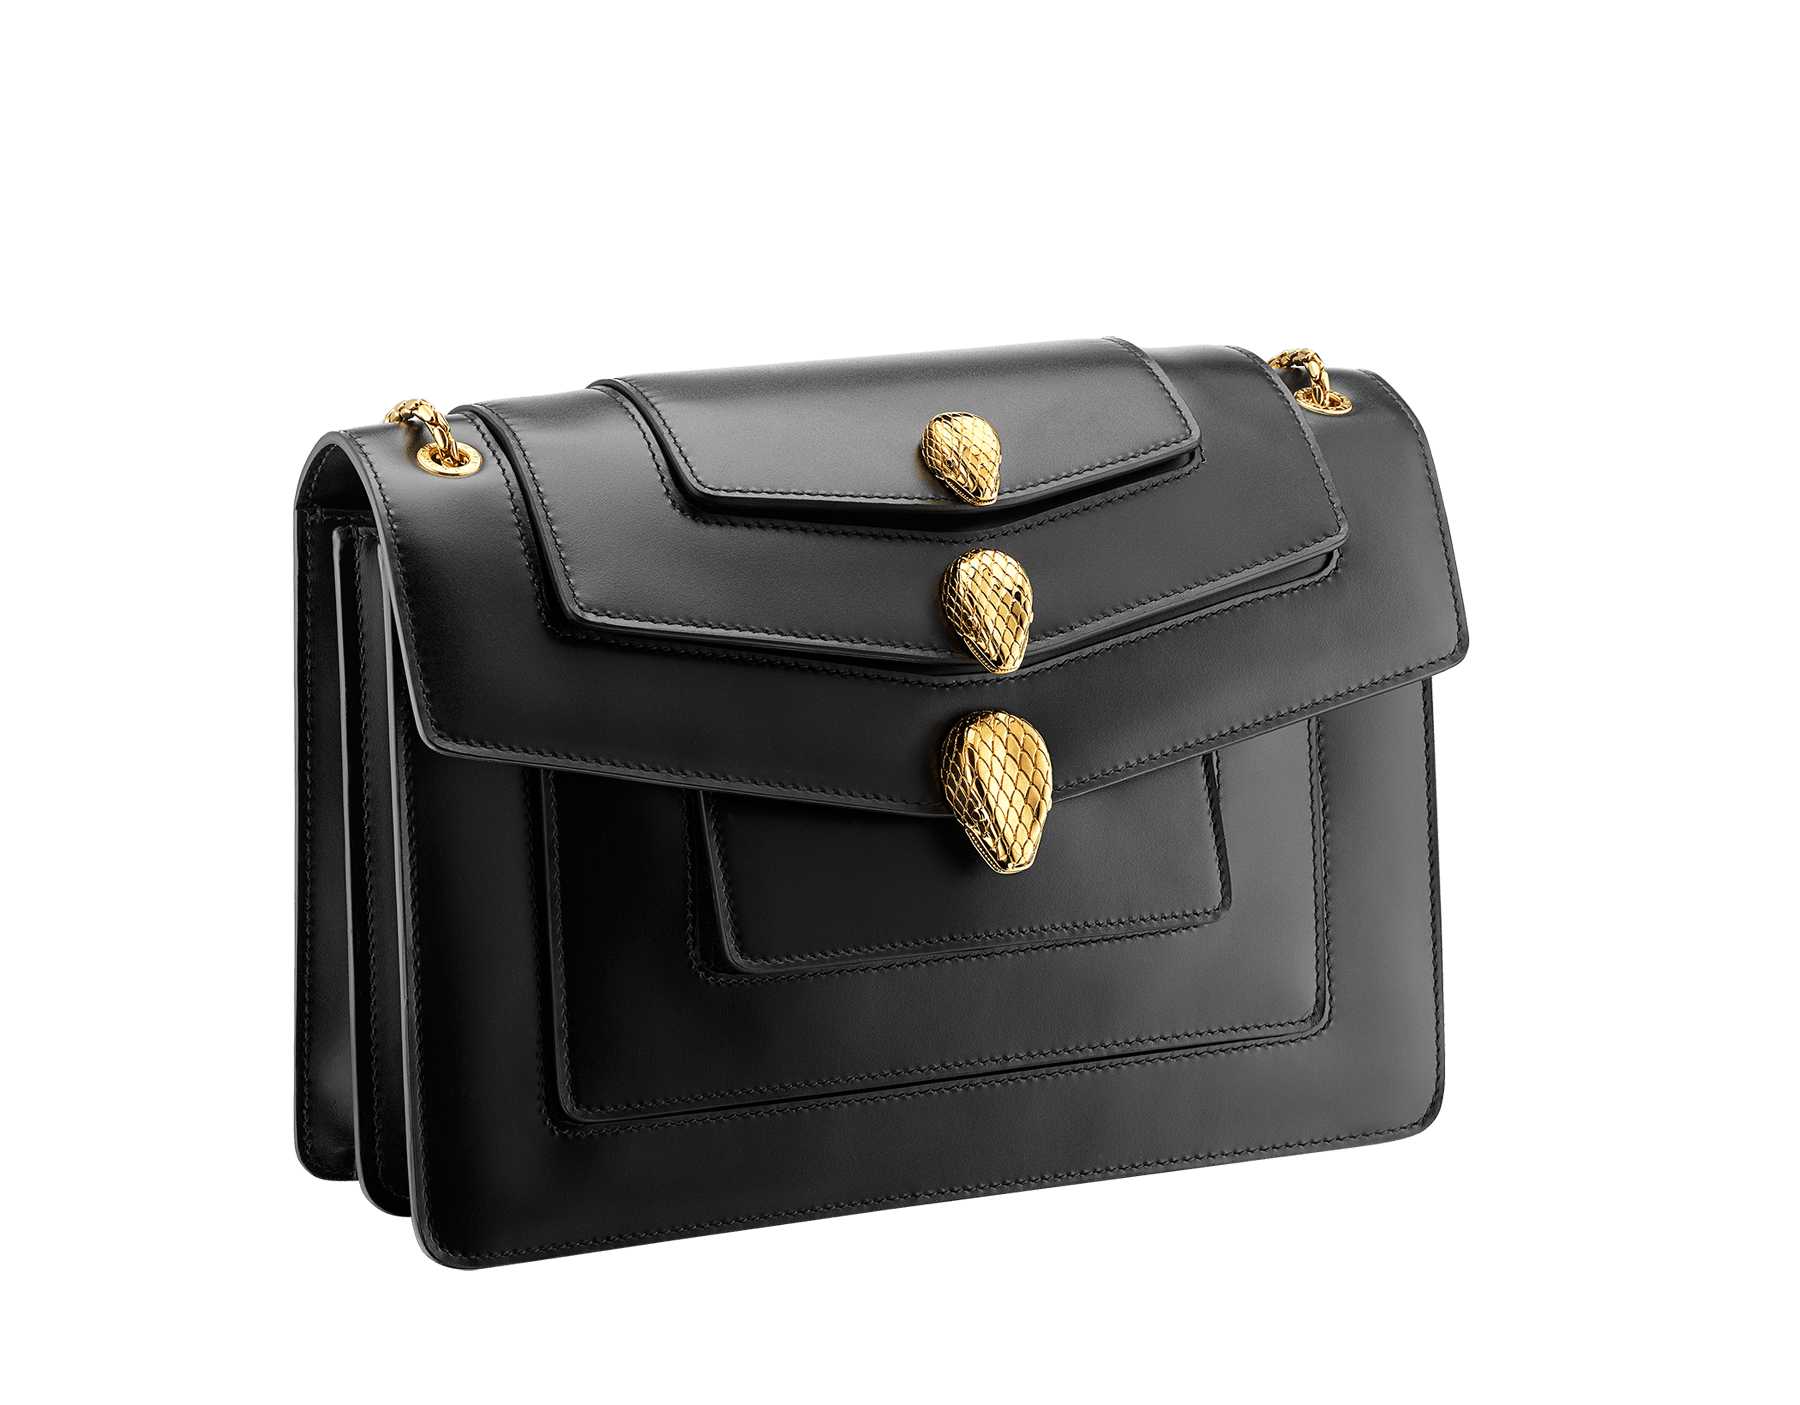 Alexander Wang x Bvlgari Triplette shoulder bag in smooth black calf leather. New triple Serpenti head closure in antique gold plated brass with tempting red enamel eyes. Limited edition. SFW-001-1003M image 2